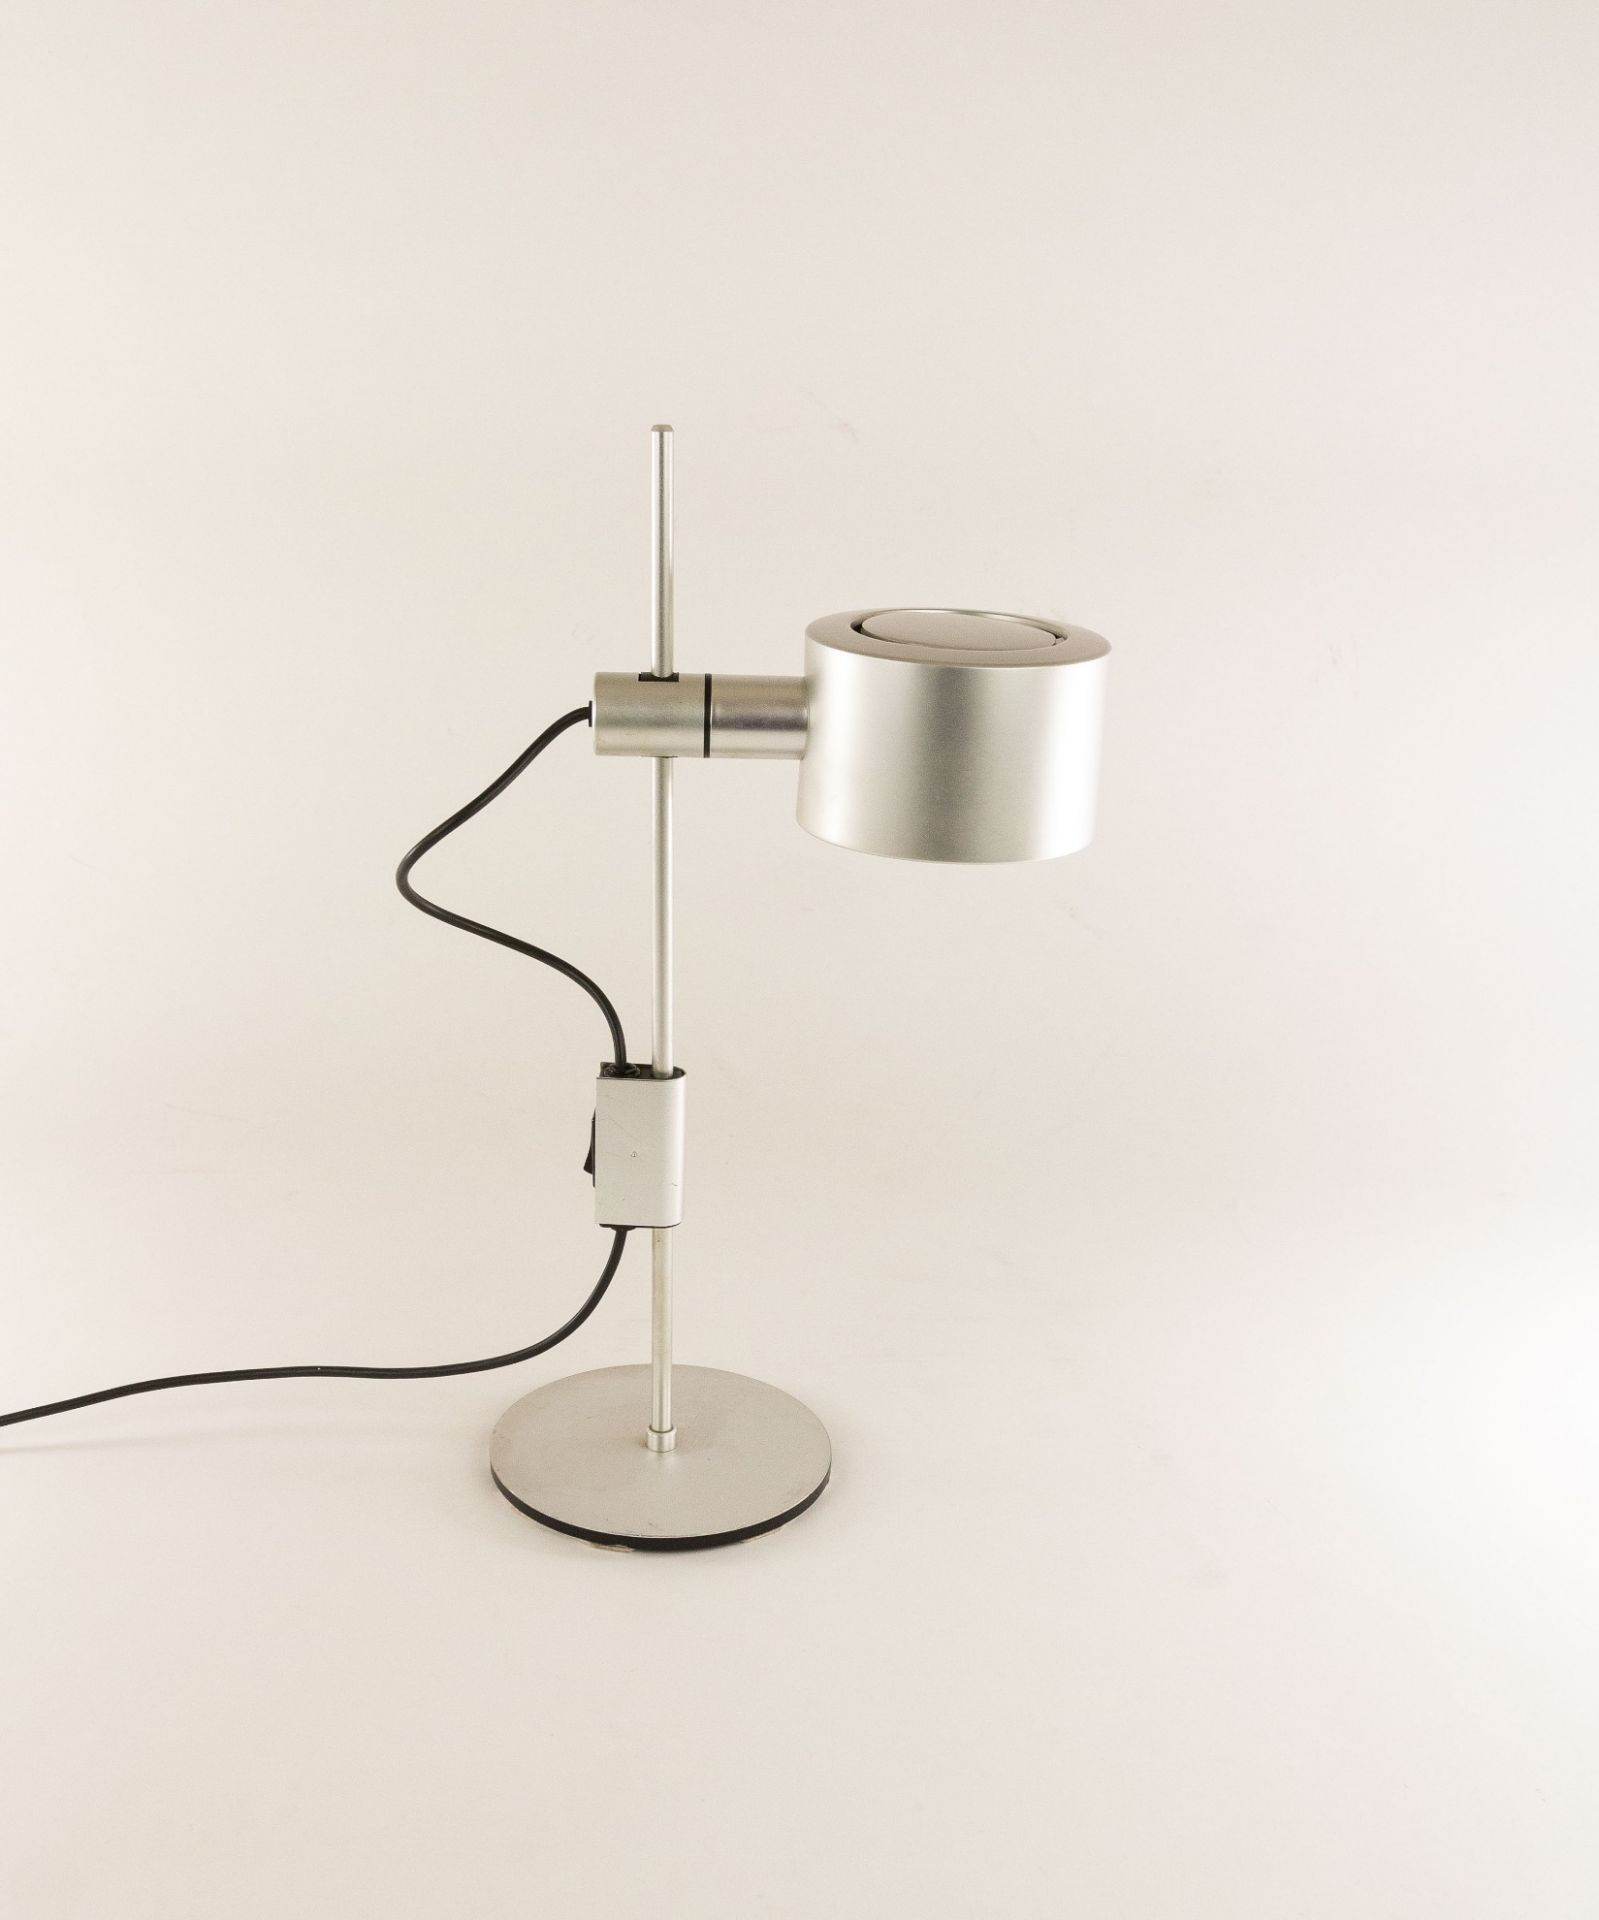 Aluminium table lamp by Ronald Homes for Conelight Limited, 1960s